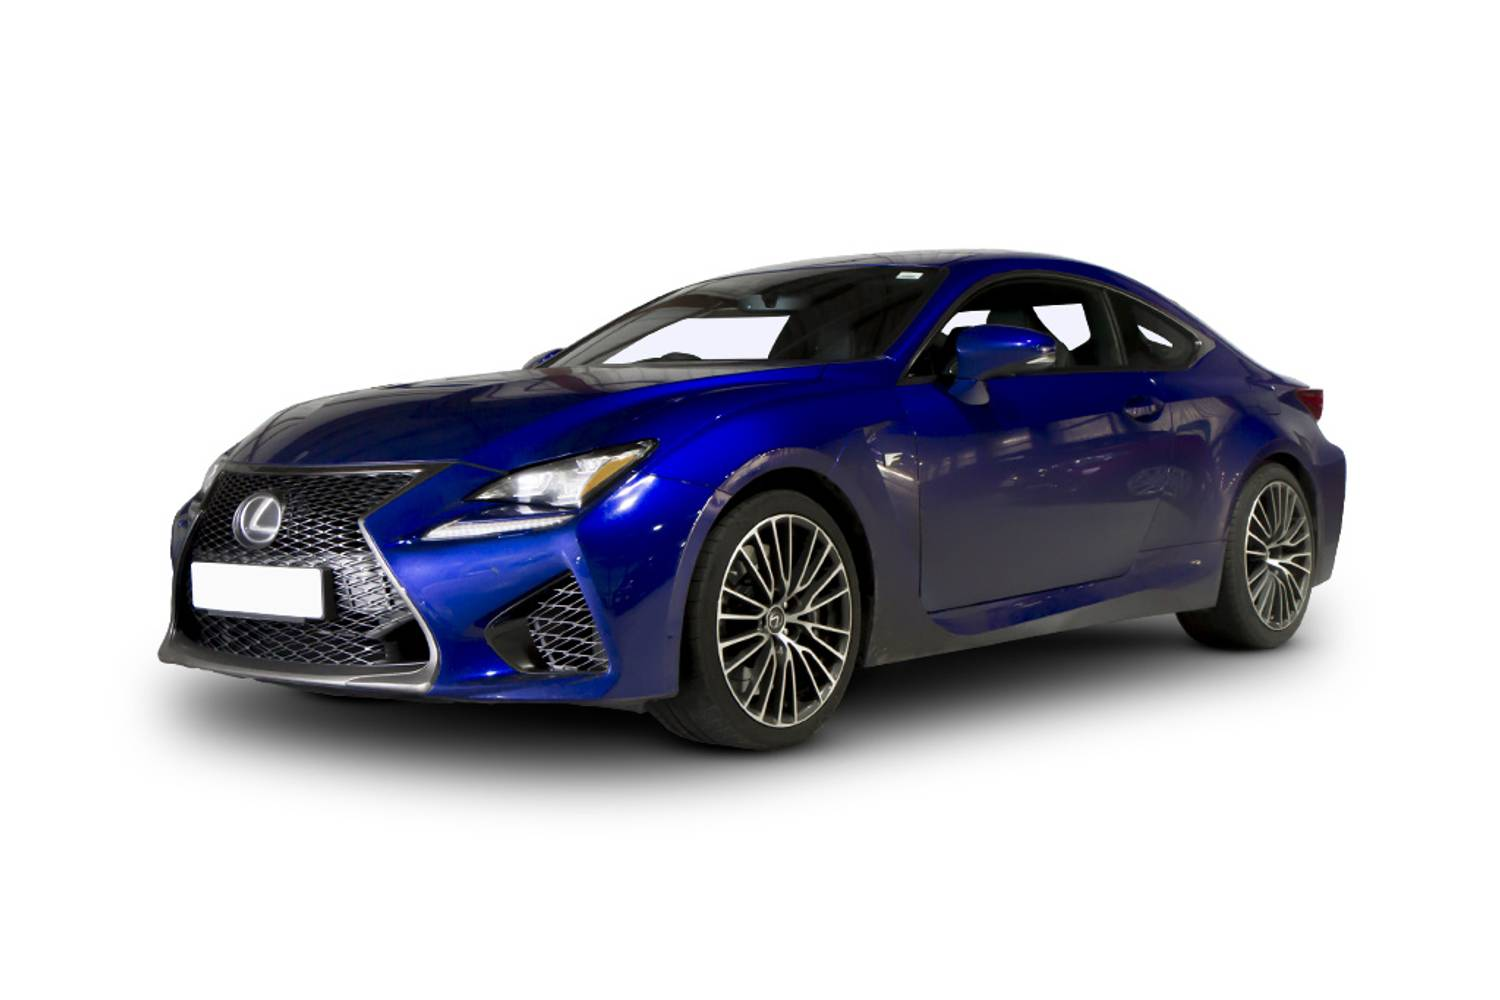 automobile magazine show front week review more car lexus f rc one news